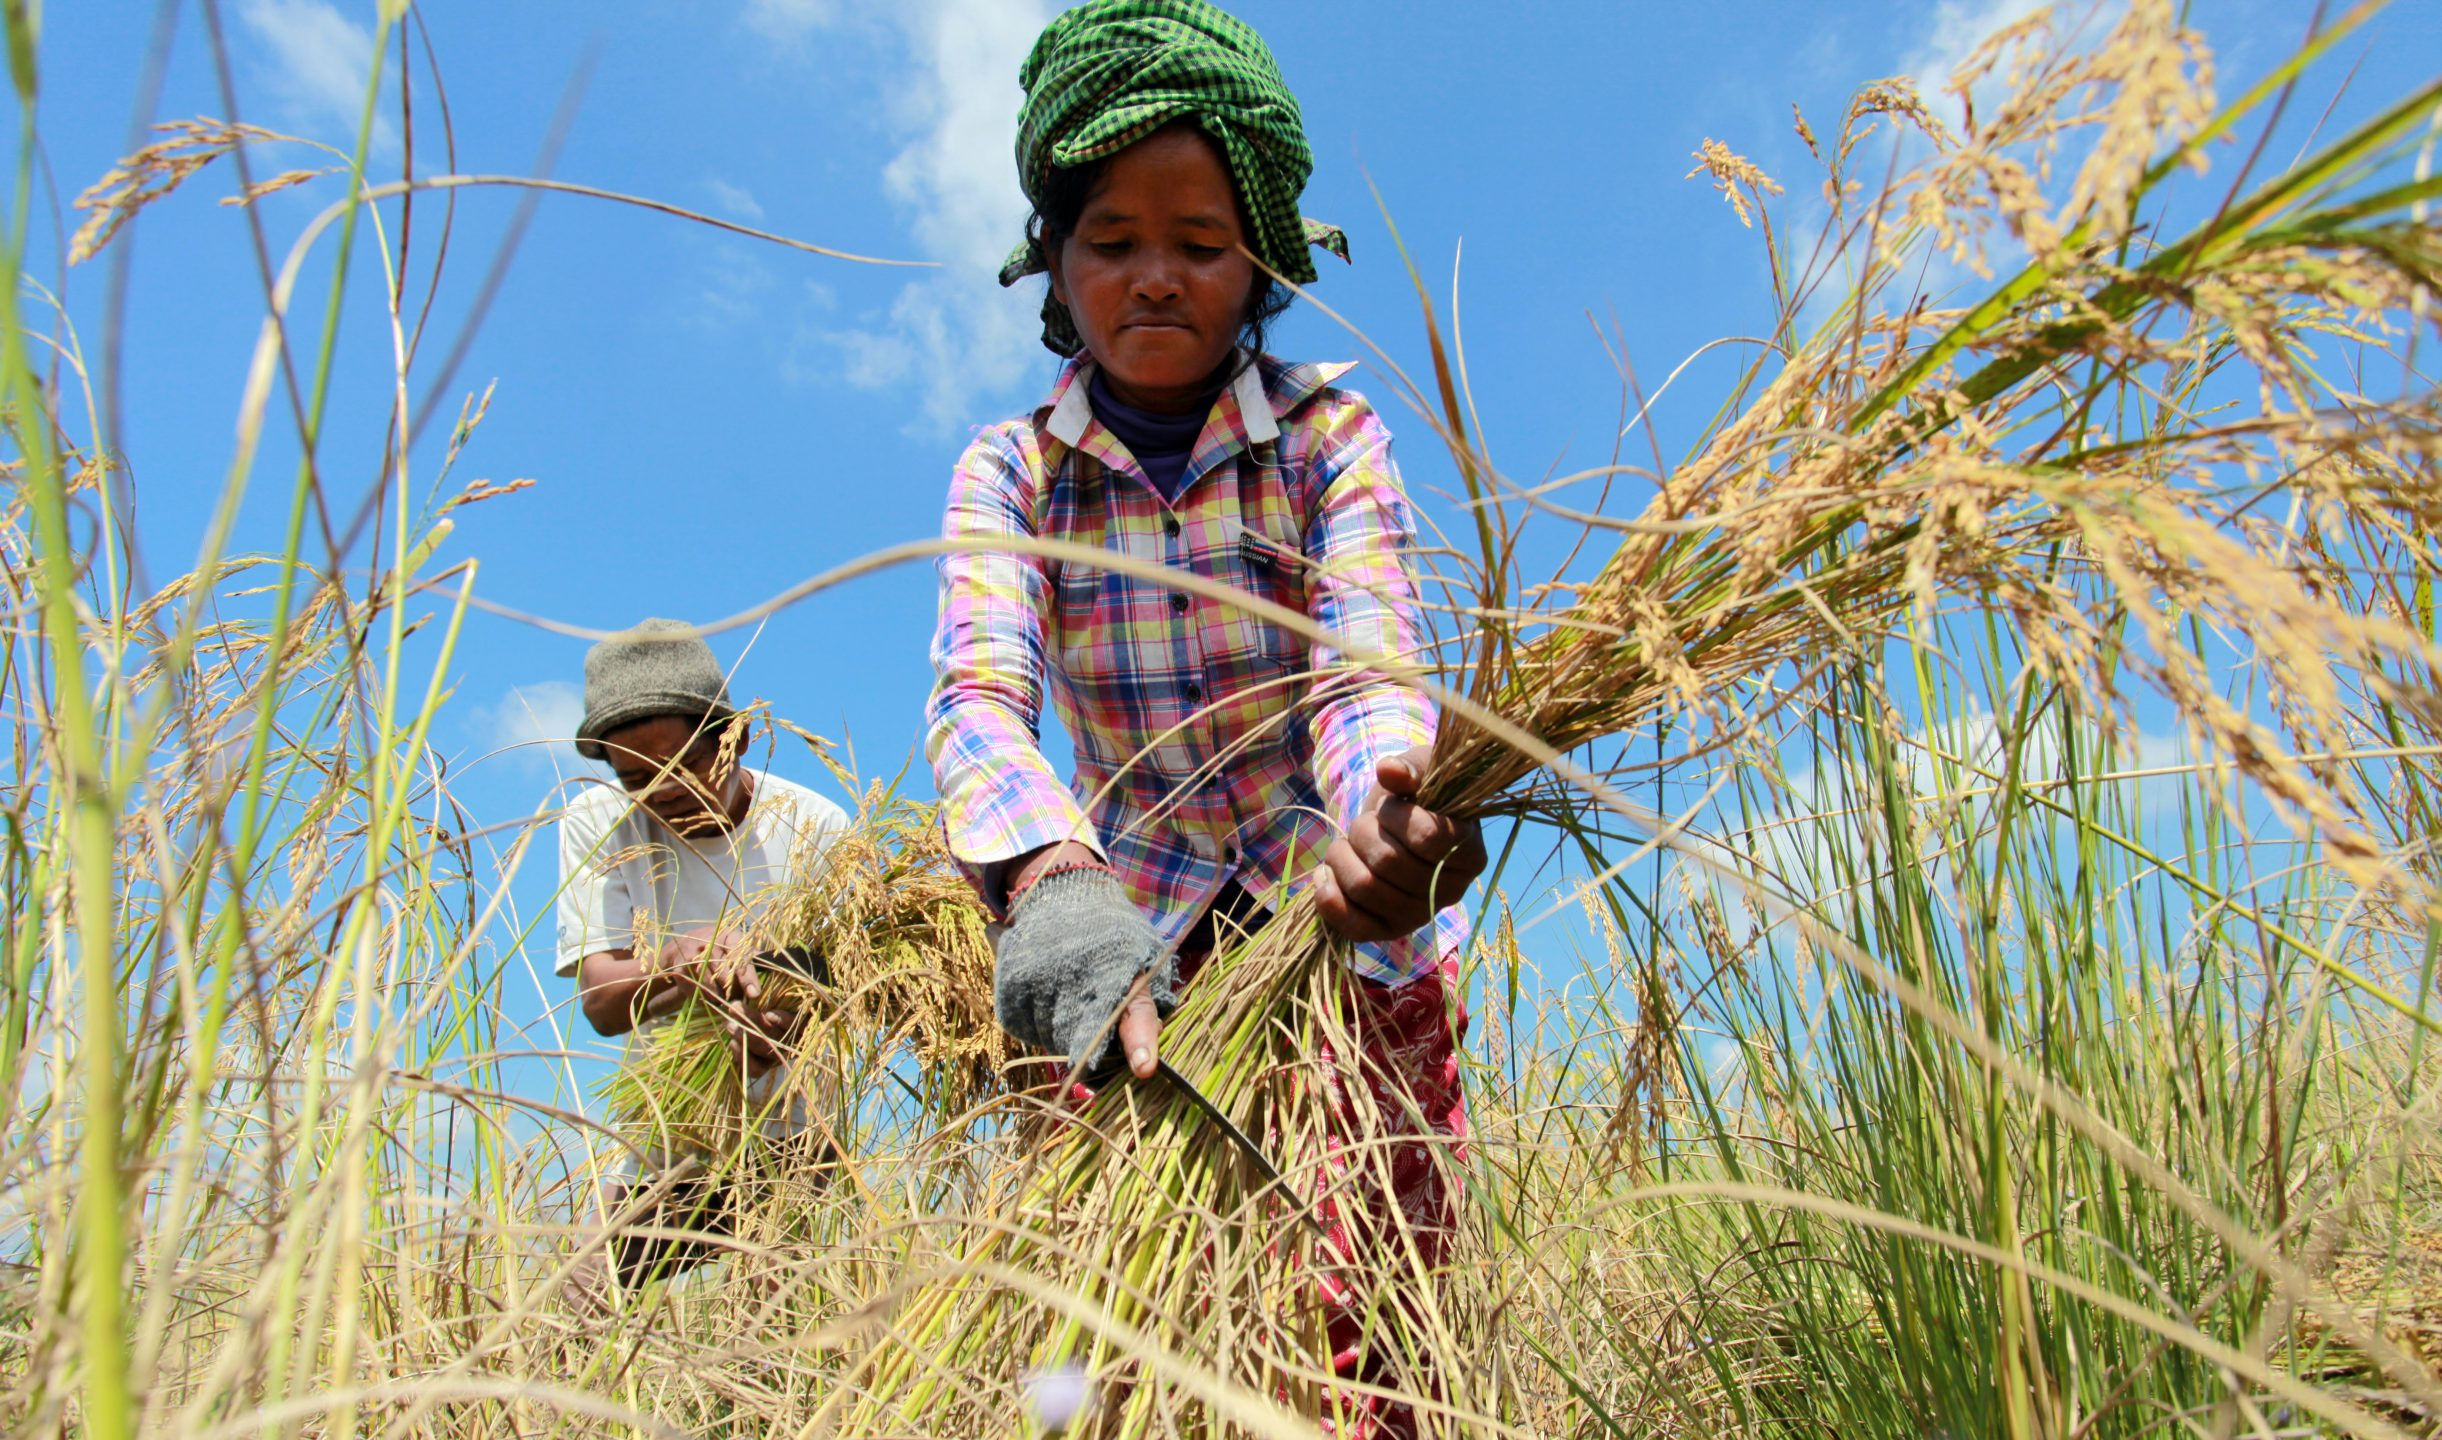 A woman and her husband harvest rice in a field.